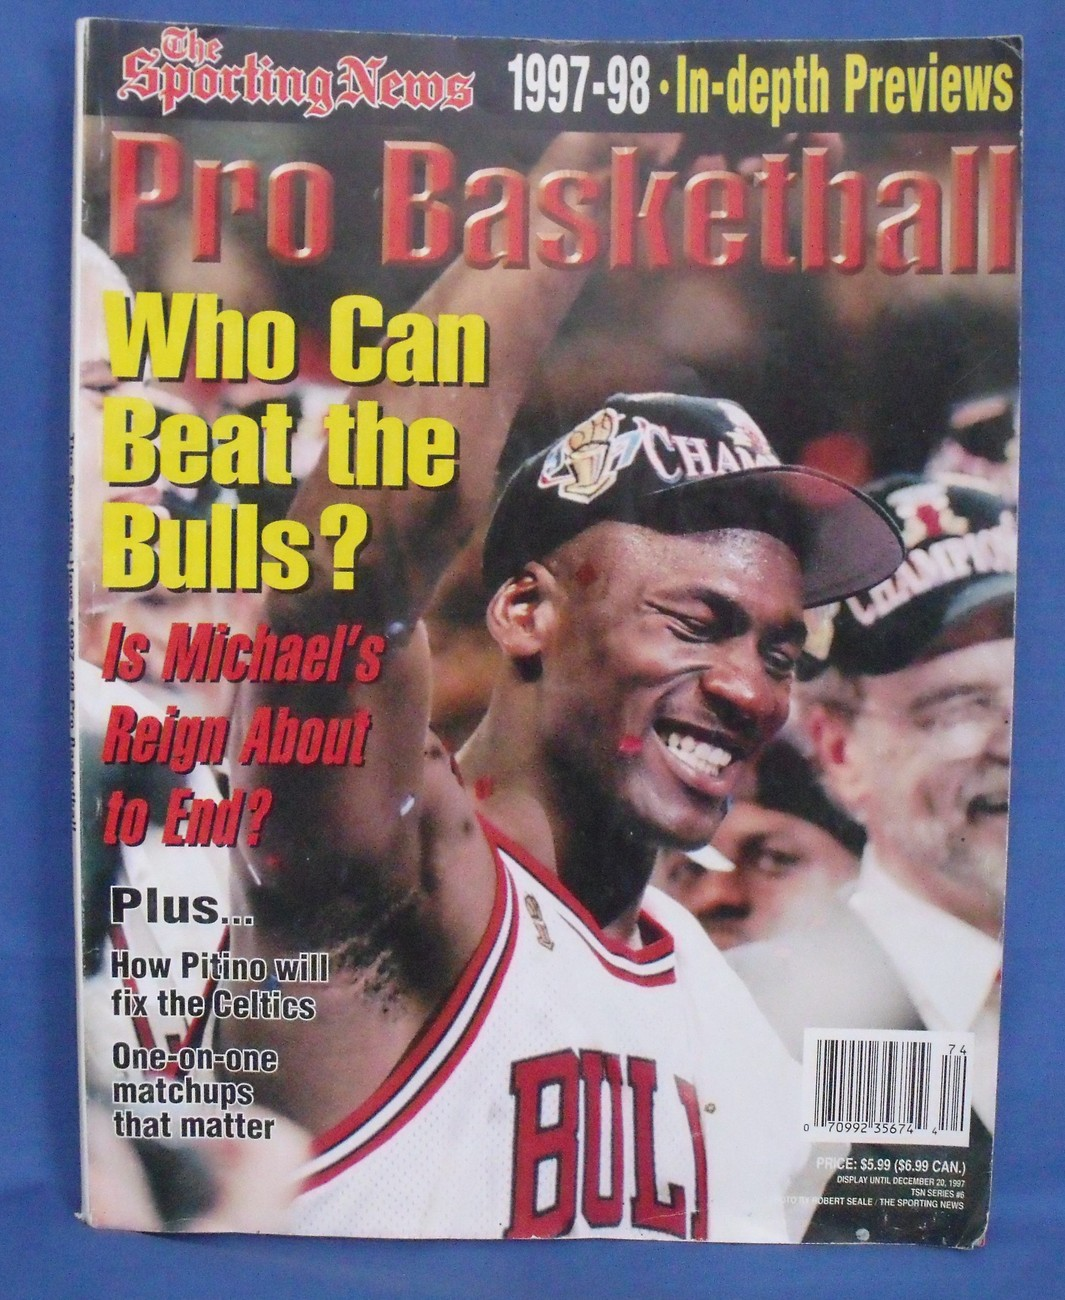 Primary image for The Sporting News Pro Basketball 1997 1998 In Depth Previews Magazine